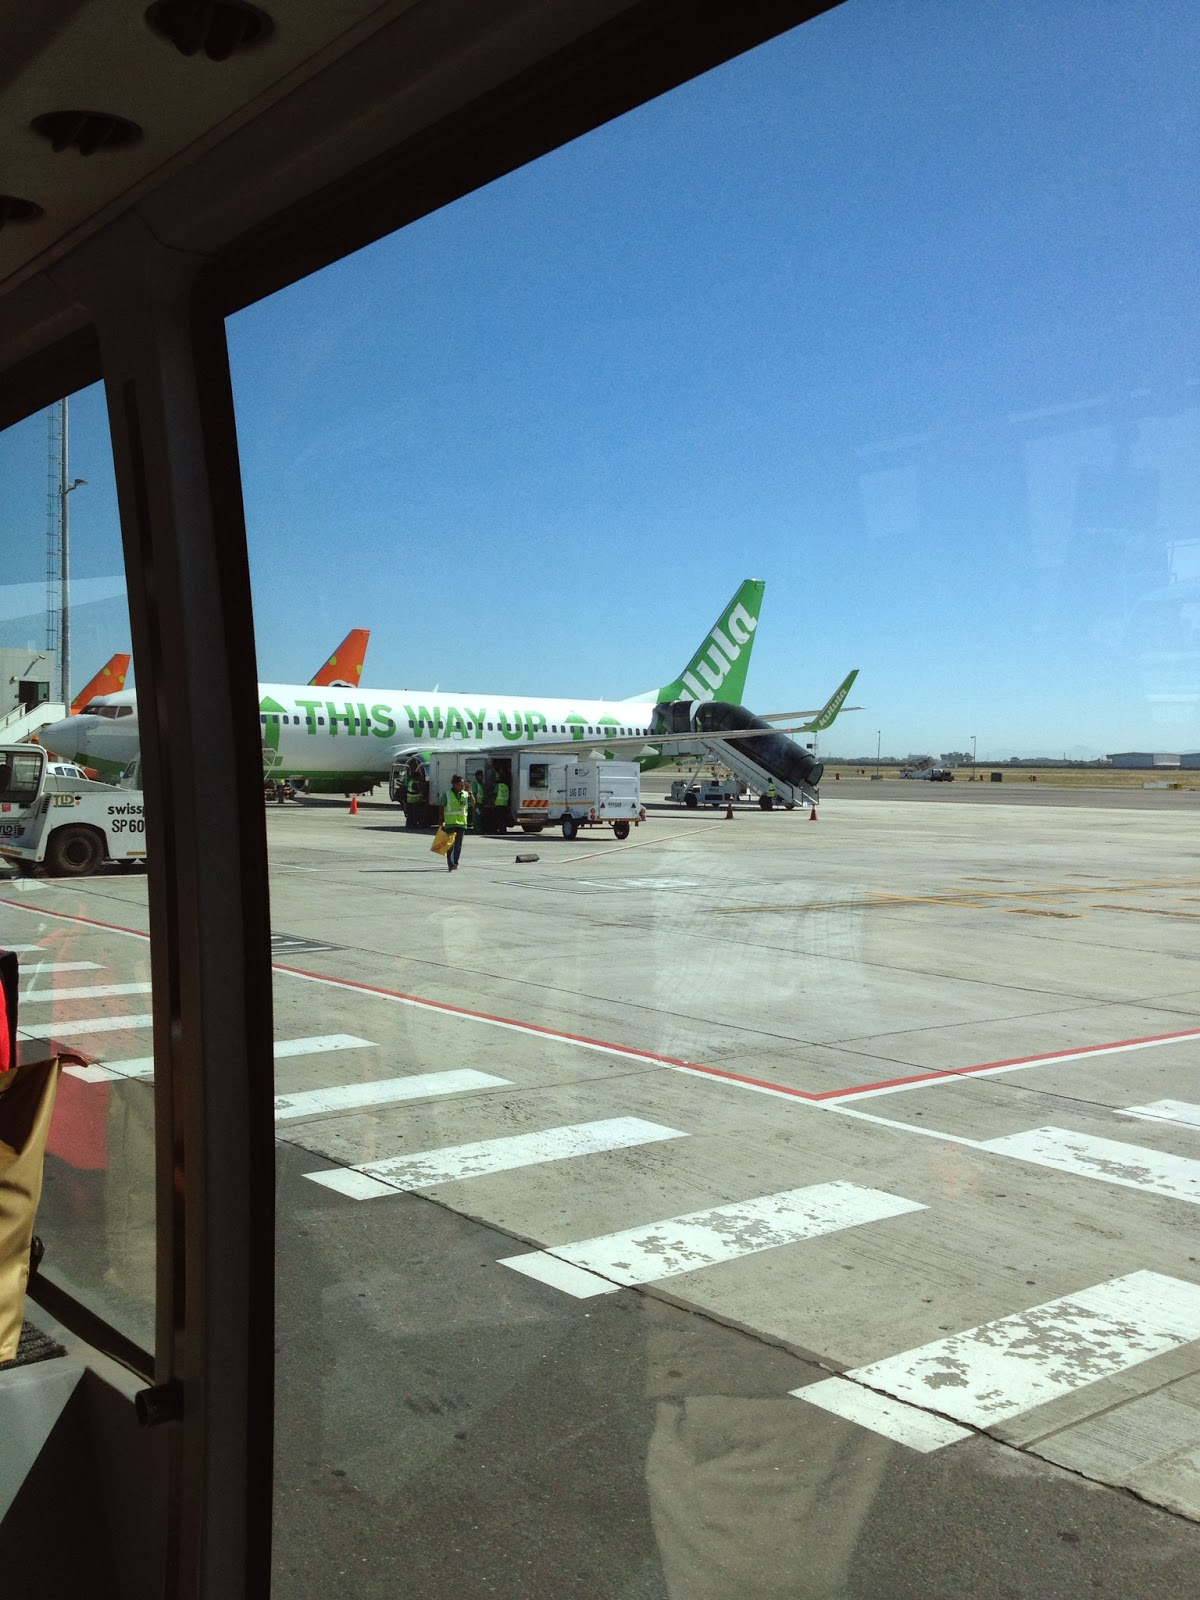 Cape Town - A lot of people on our airport bus got a chuckle reading the slogan on this plane